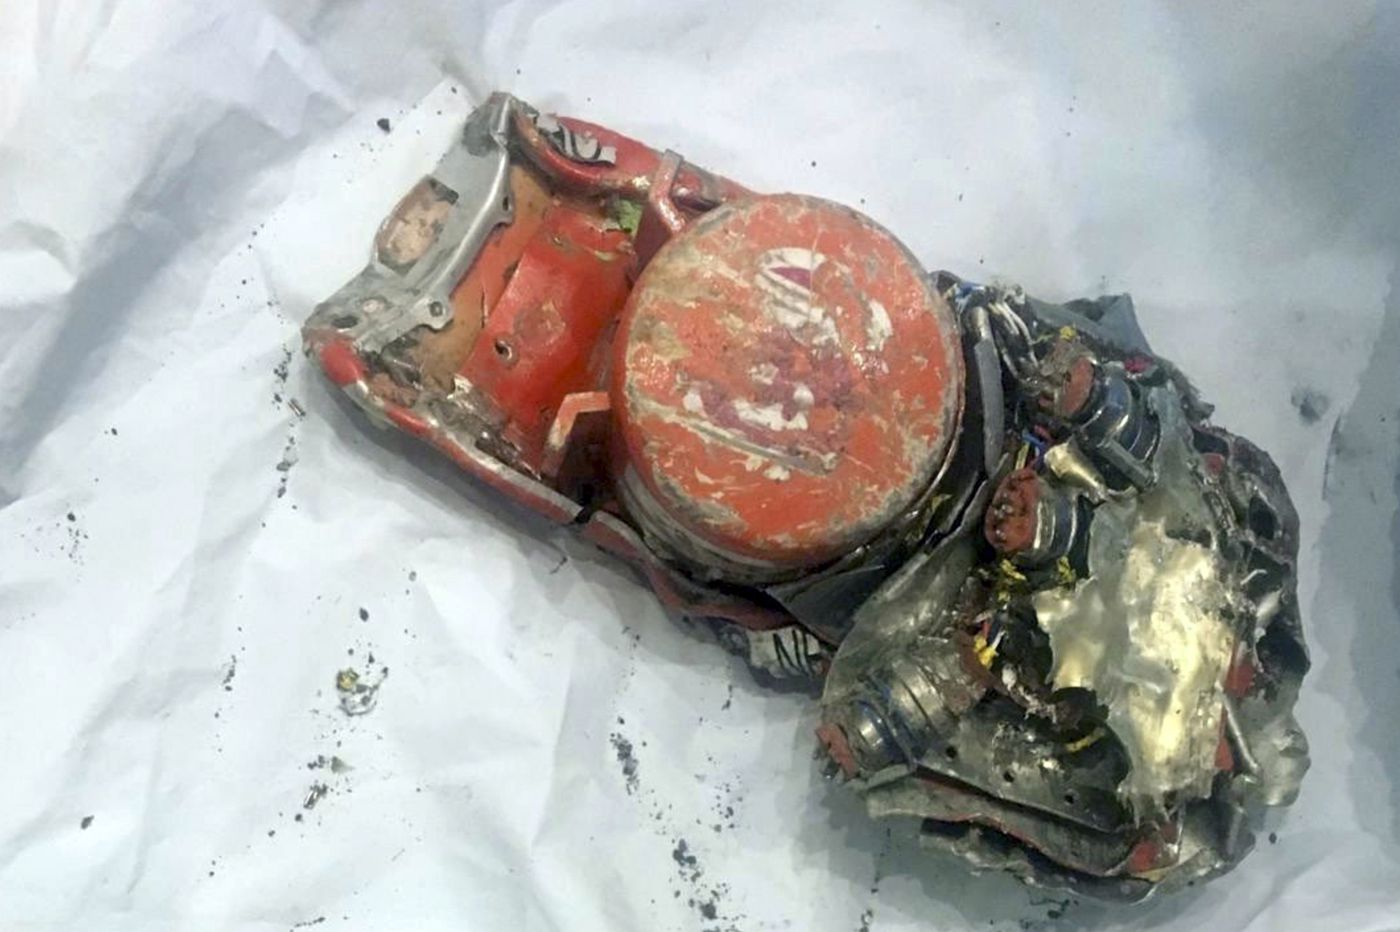 French start analysis of Ethiopian Airlines black boxes from Boeing 737 Max 8 as new evidence appears